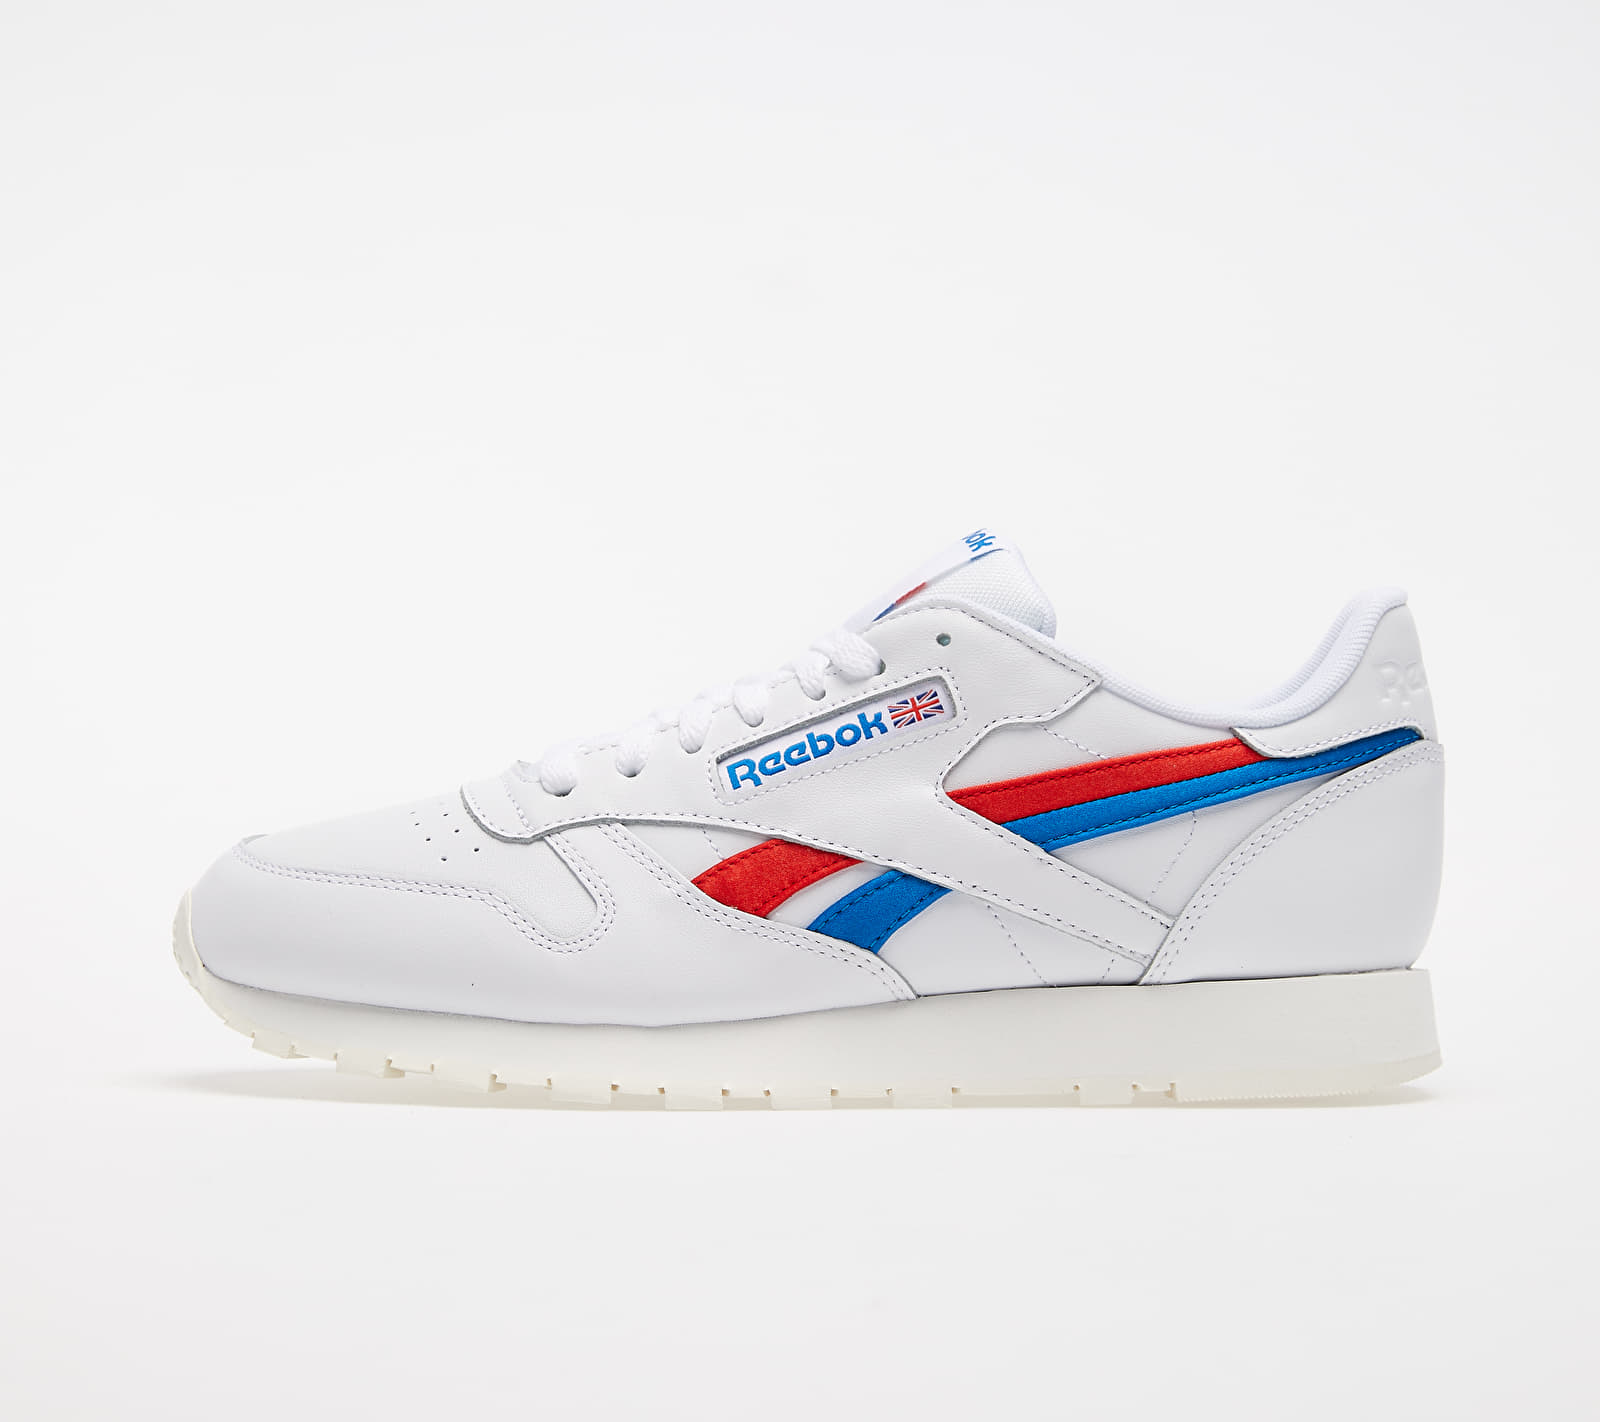 Reebok Classic Leather White/ Instinct Red/ Dynamic Blue EUR 45